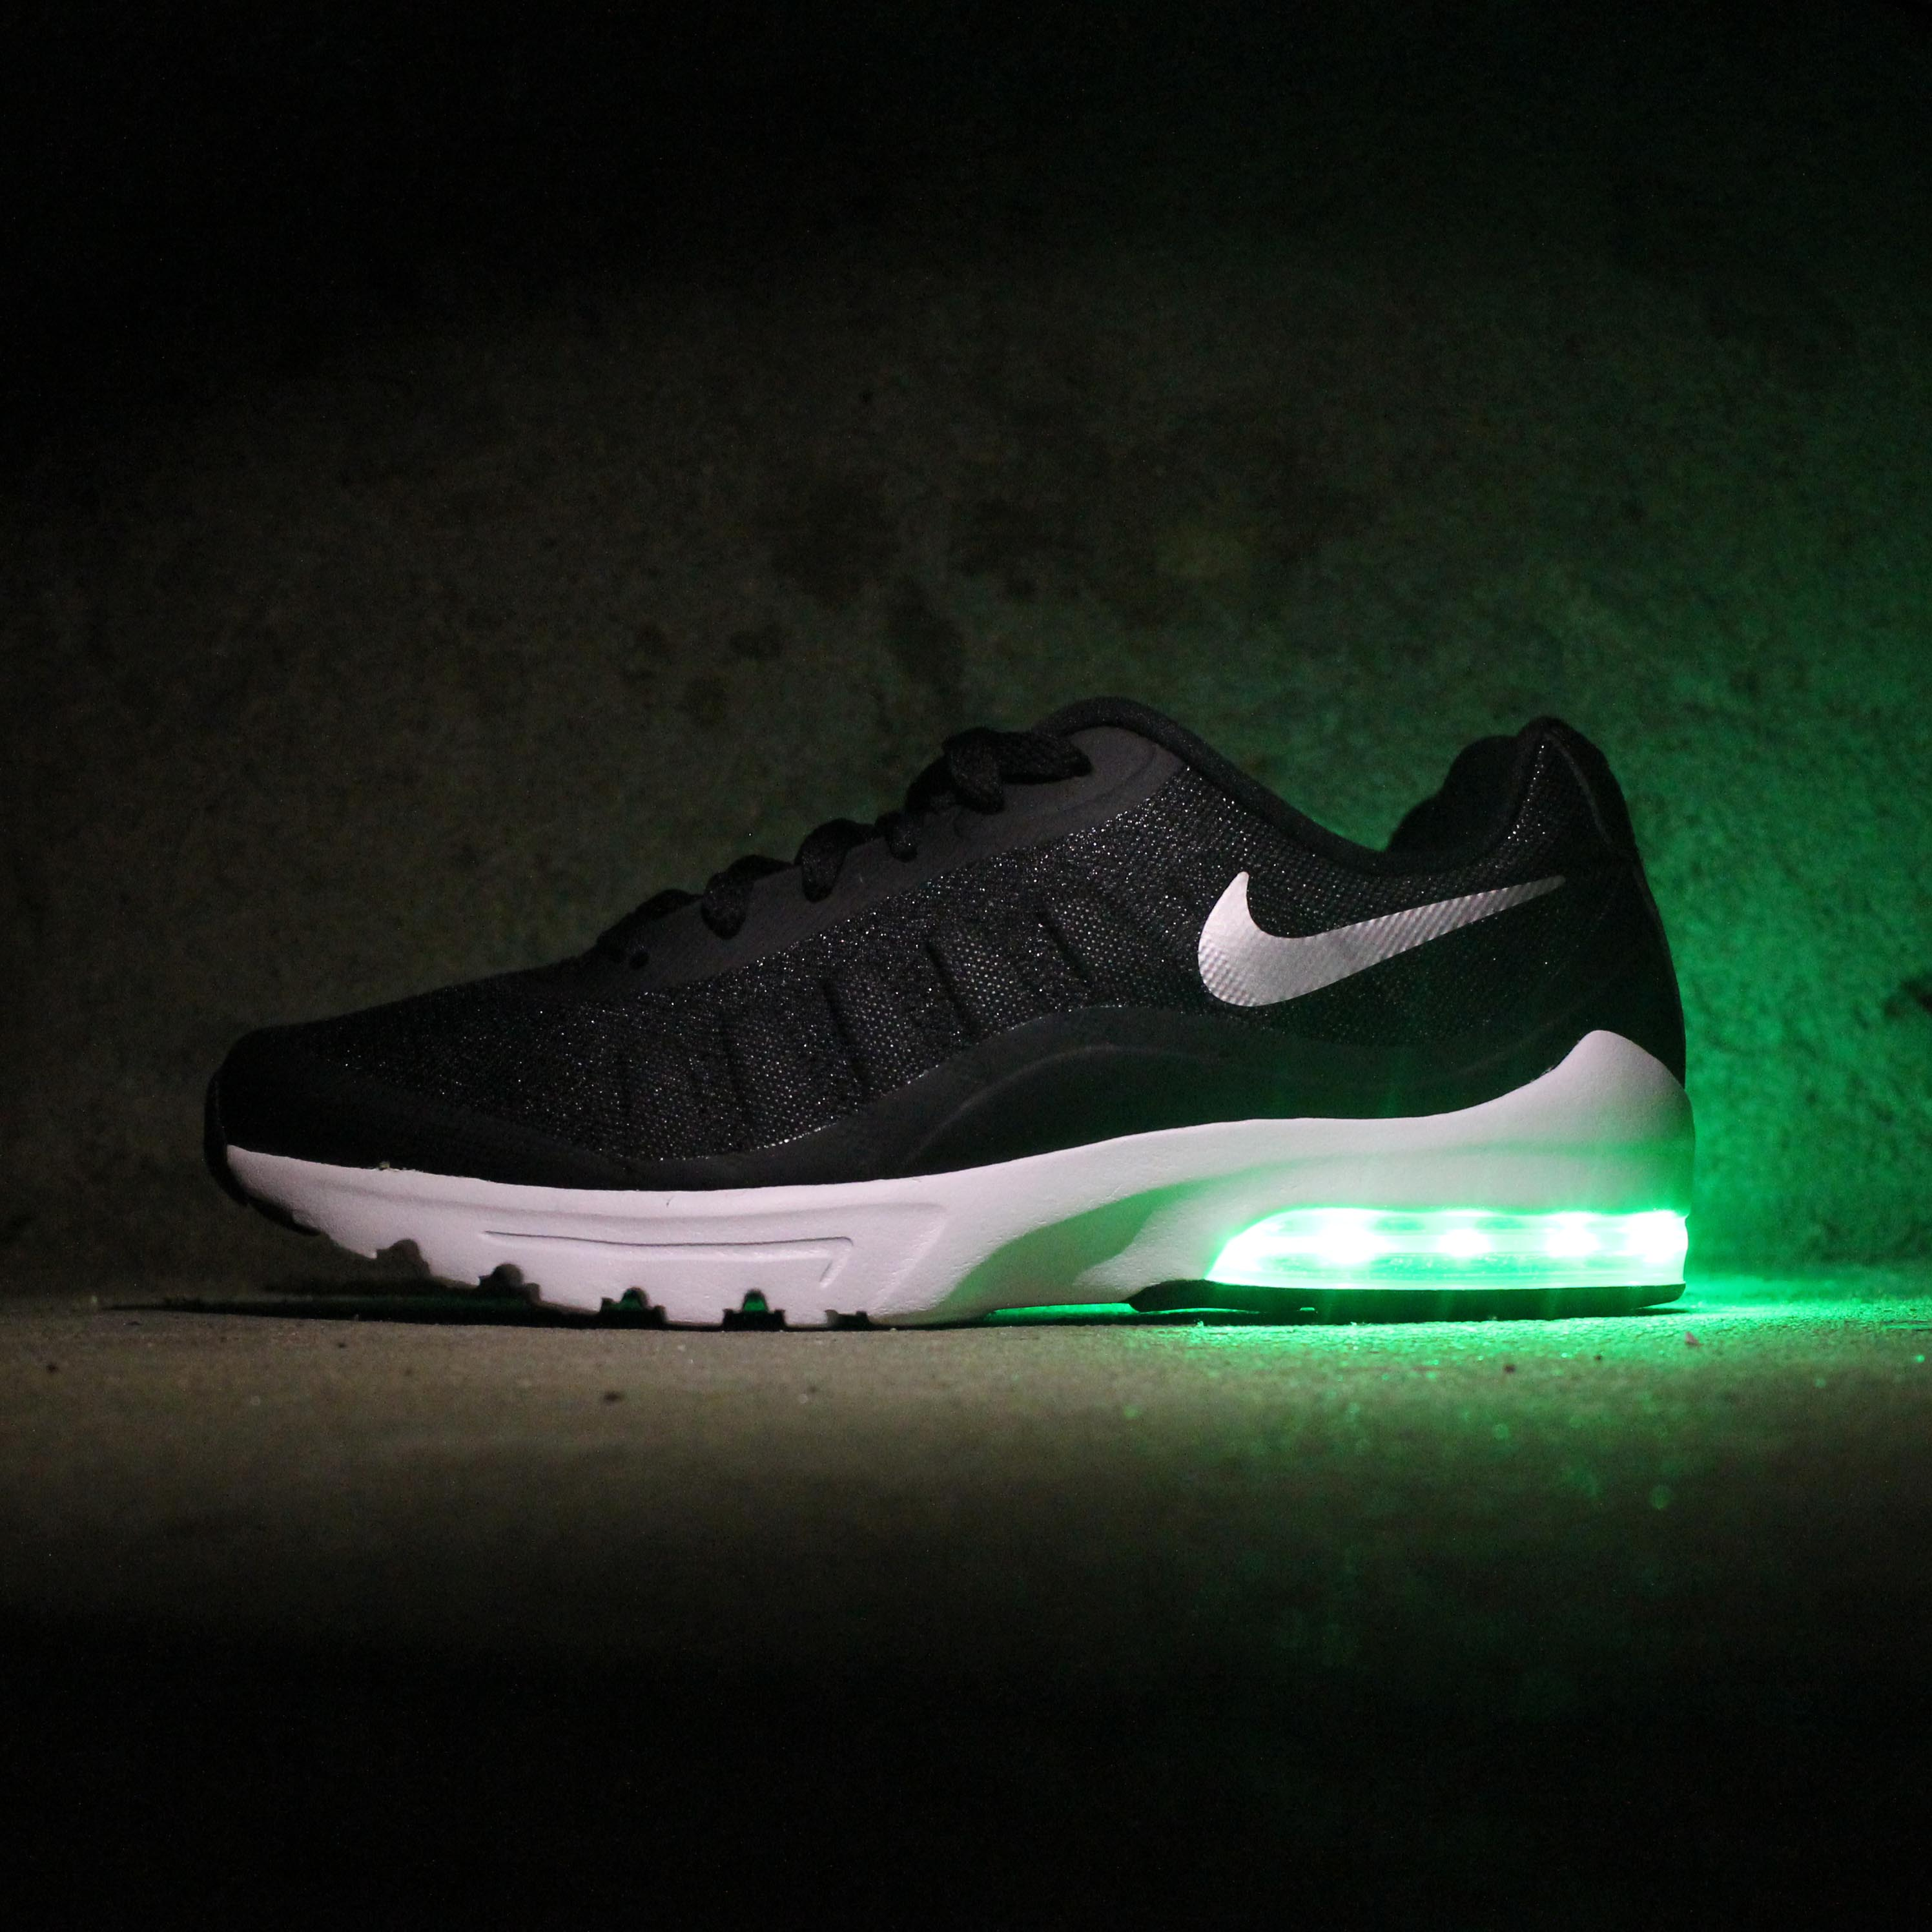 WOMENS BLACK NIKE AIR MAX INVIGOR WITH LIGHTS